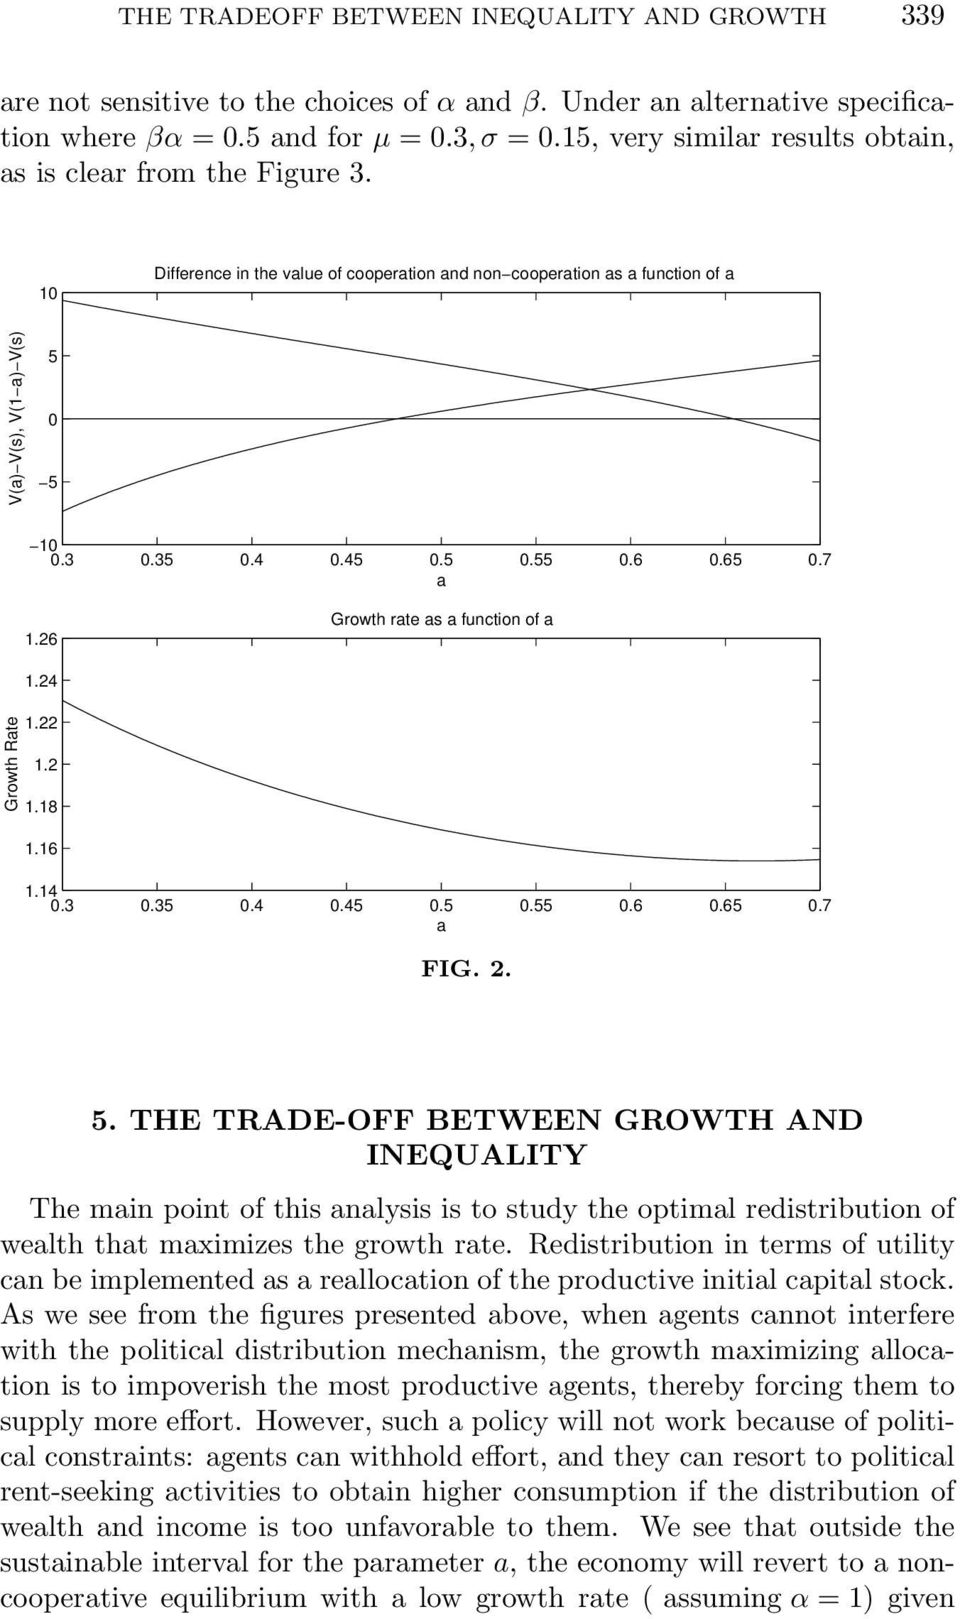 26 Growth rte s function of 1.24 Growth Rte 1.22 1.2 1.18 1.16 1.14 0.3 0.35 0.4 0.45 0.5 0.55 0.6 0.65 0.7 FIG. 2. 5.